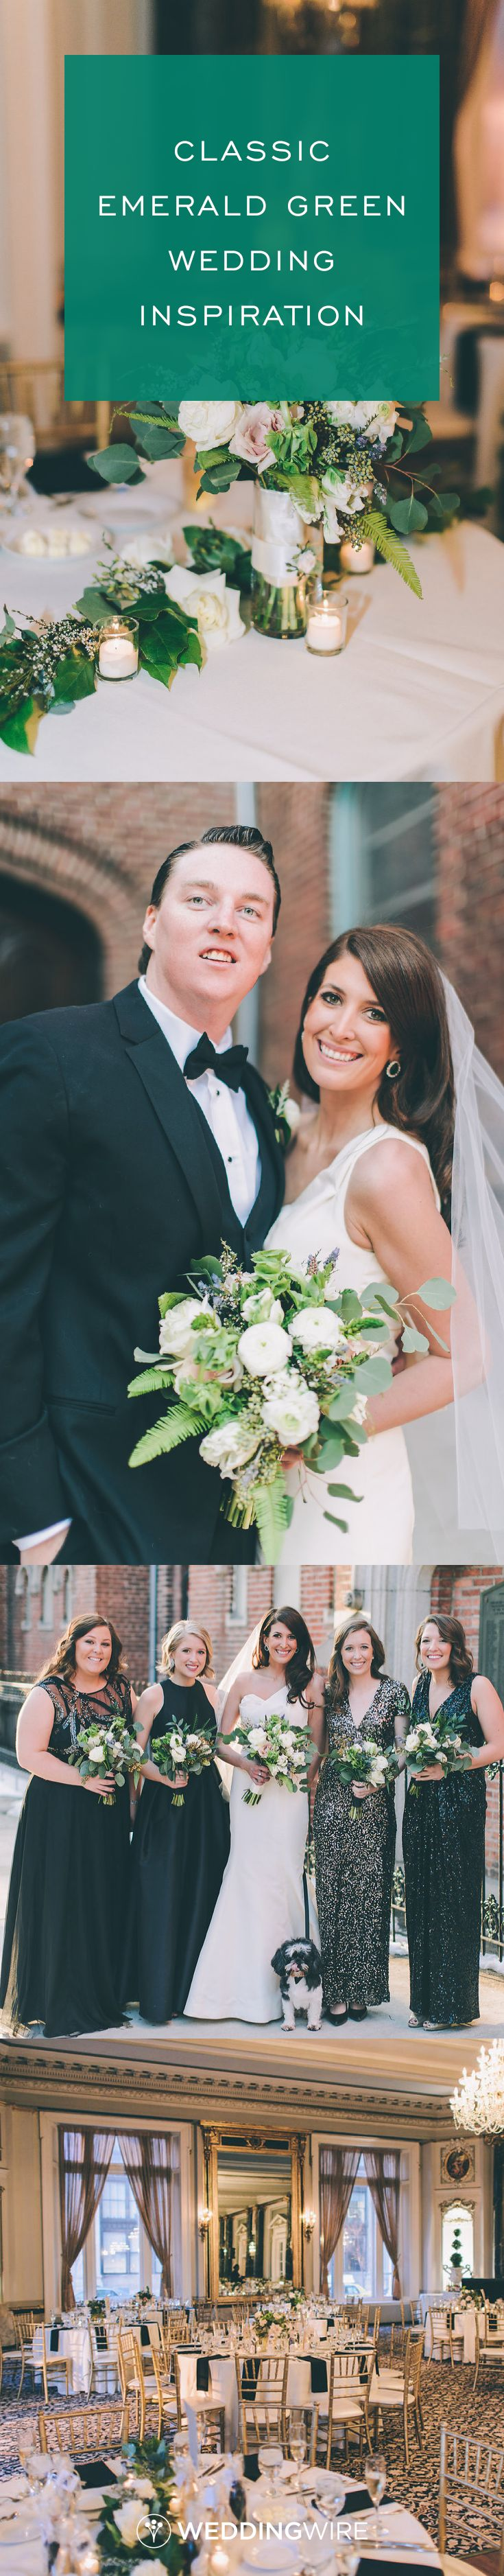 Classic Emerald Green Wedding Inspiration - elegant, chic and timeless Baltimore wedding - see the full real wedding on WeddingWire! {CJK Visuals}